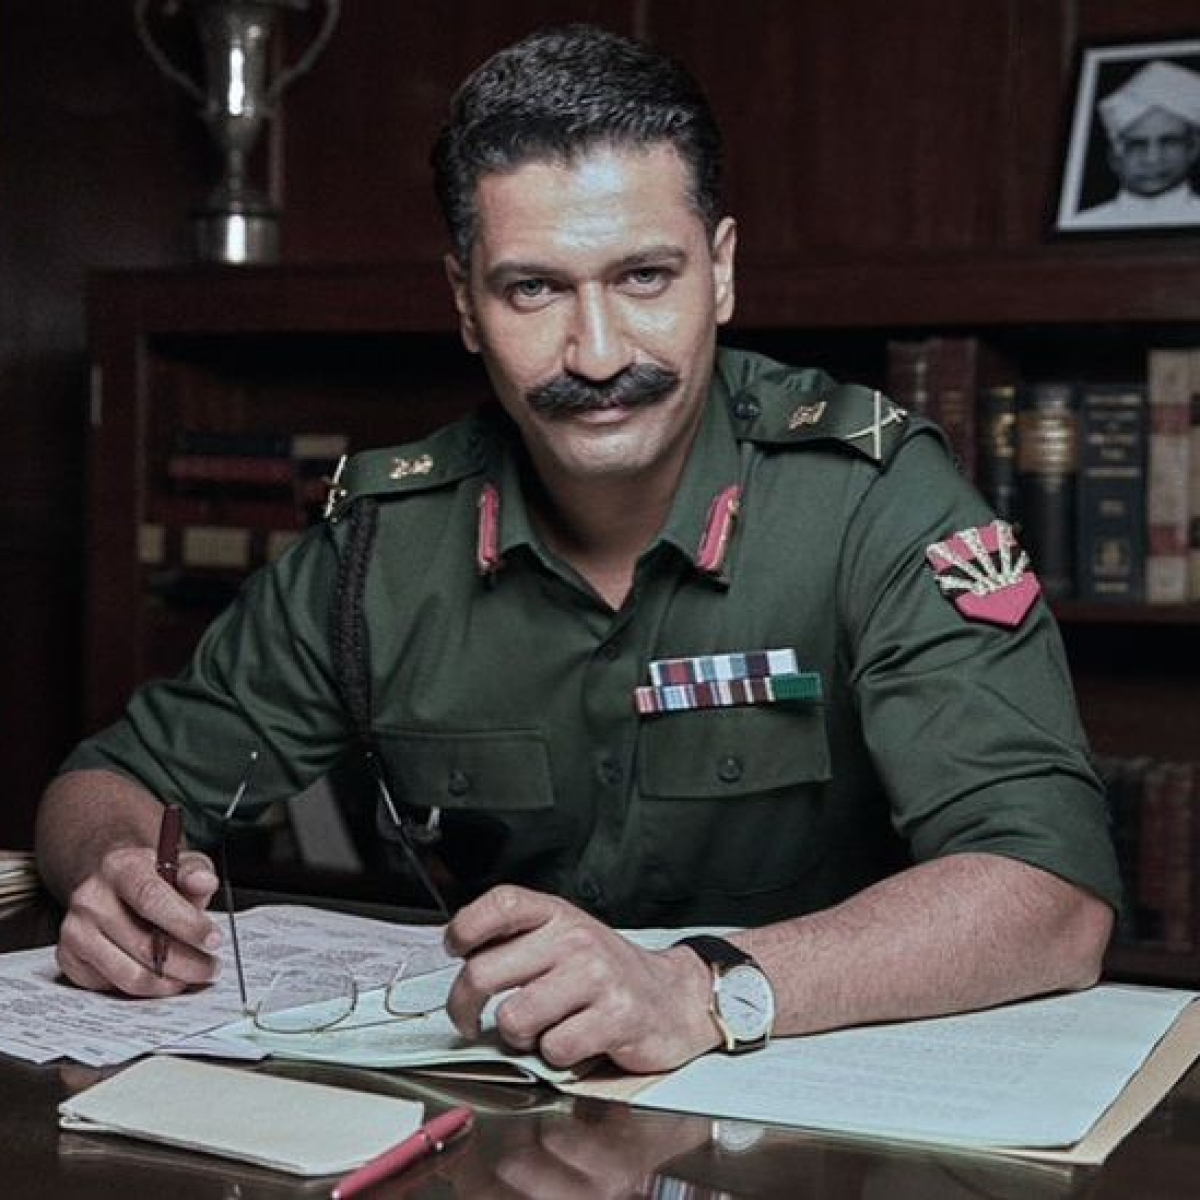 On Sam Manekshaw's birth anniversary Vicky Kaushal announces title for biopic as 'Sam Bahadur'